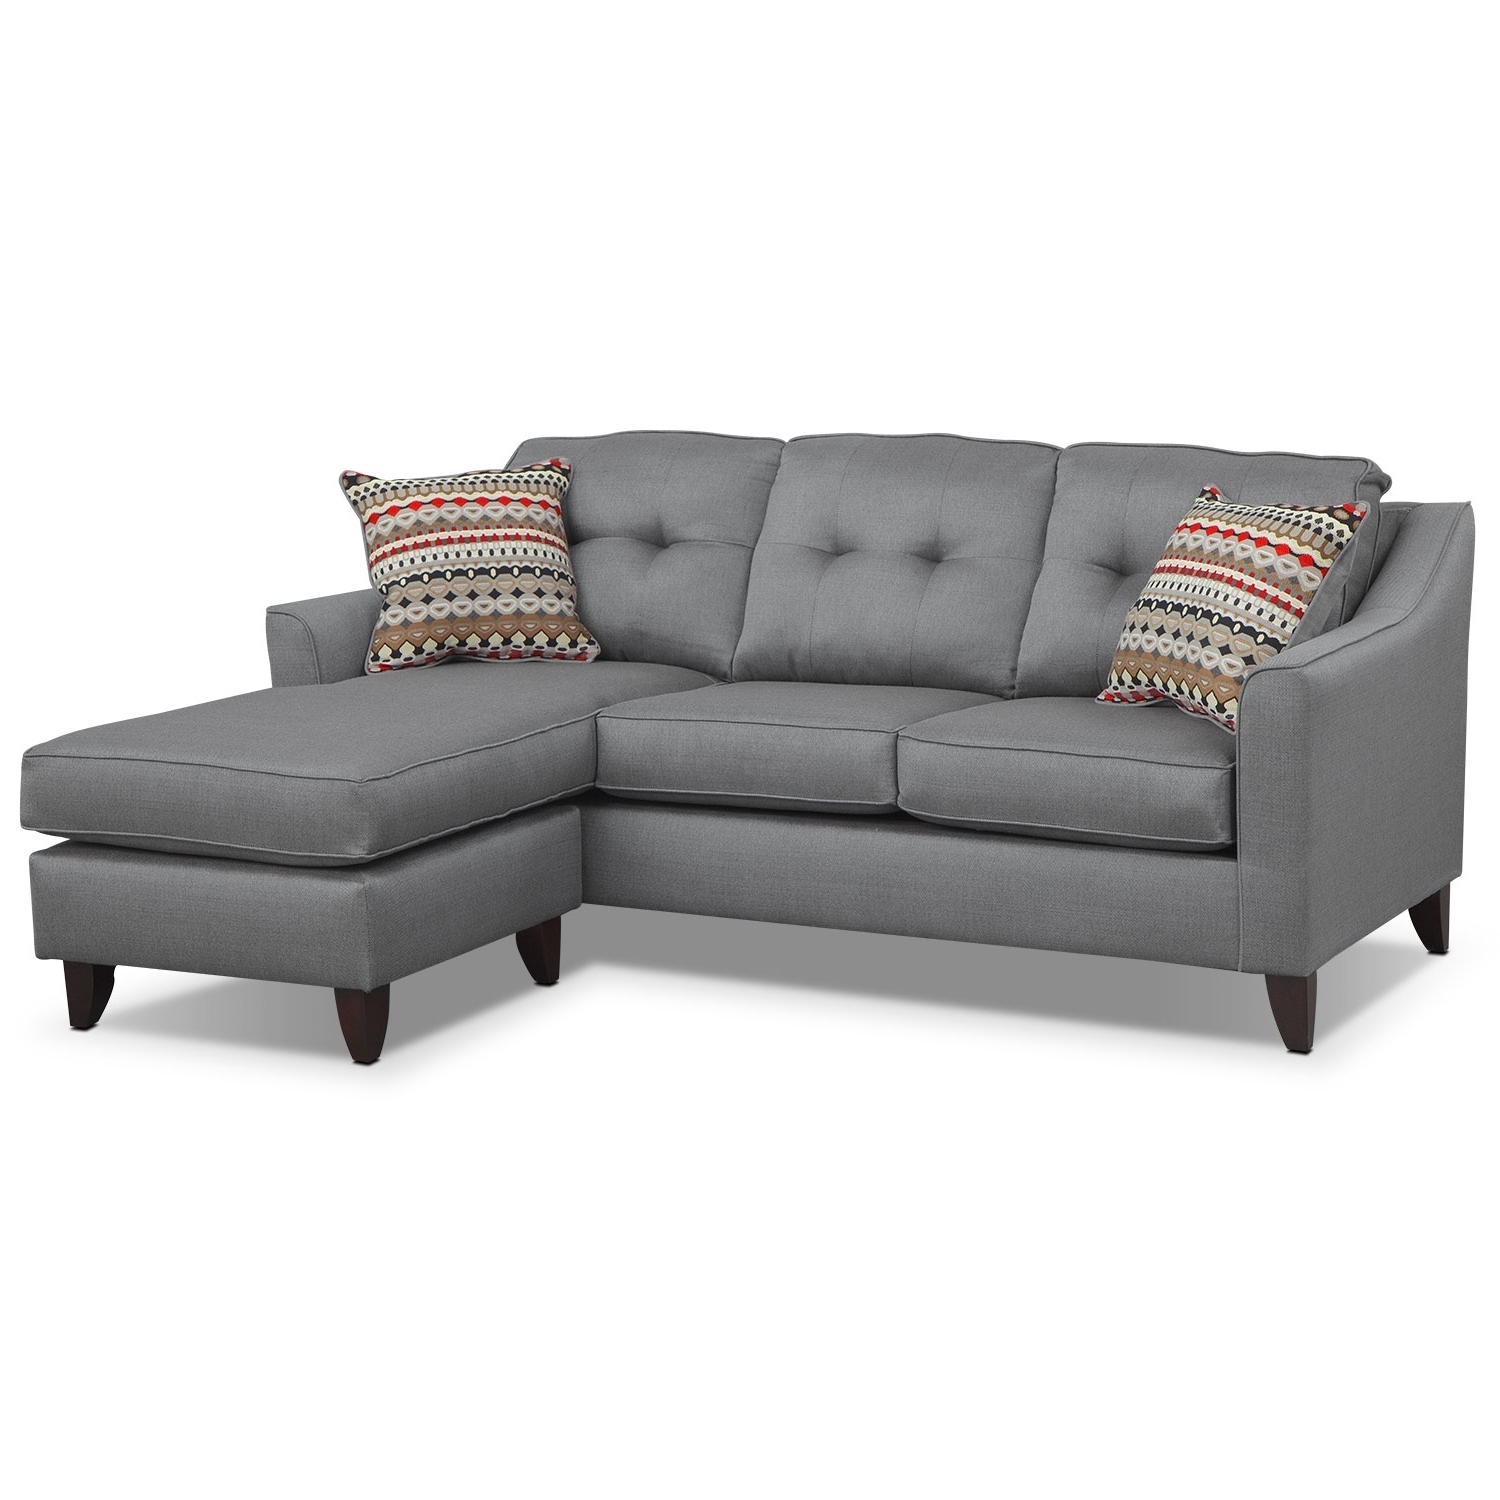 Grey Chaise Sofas For Most Recent Sofa Design Ideas: Dark Couch Grey Sofa Chaise Light Design Light (View 9 of 15)